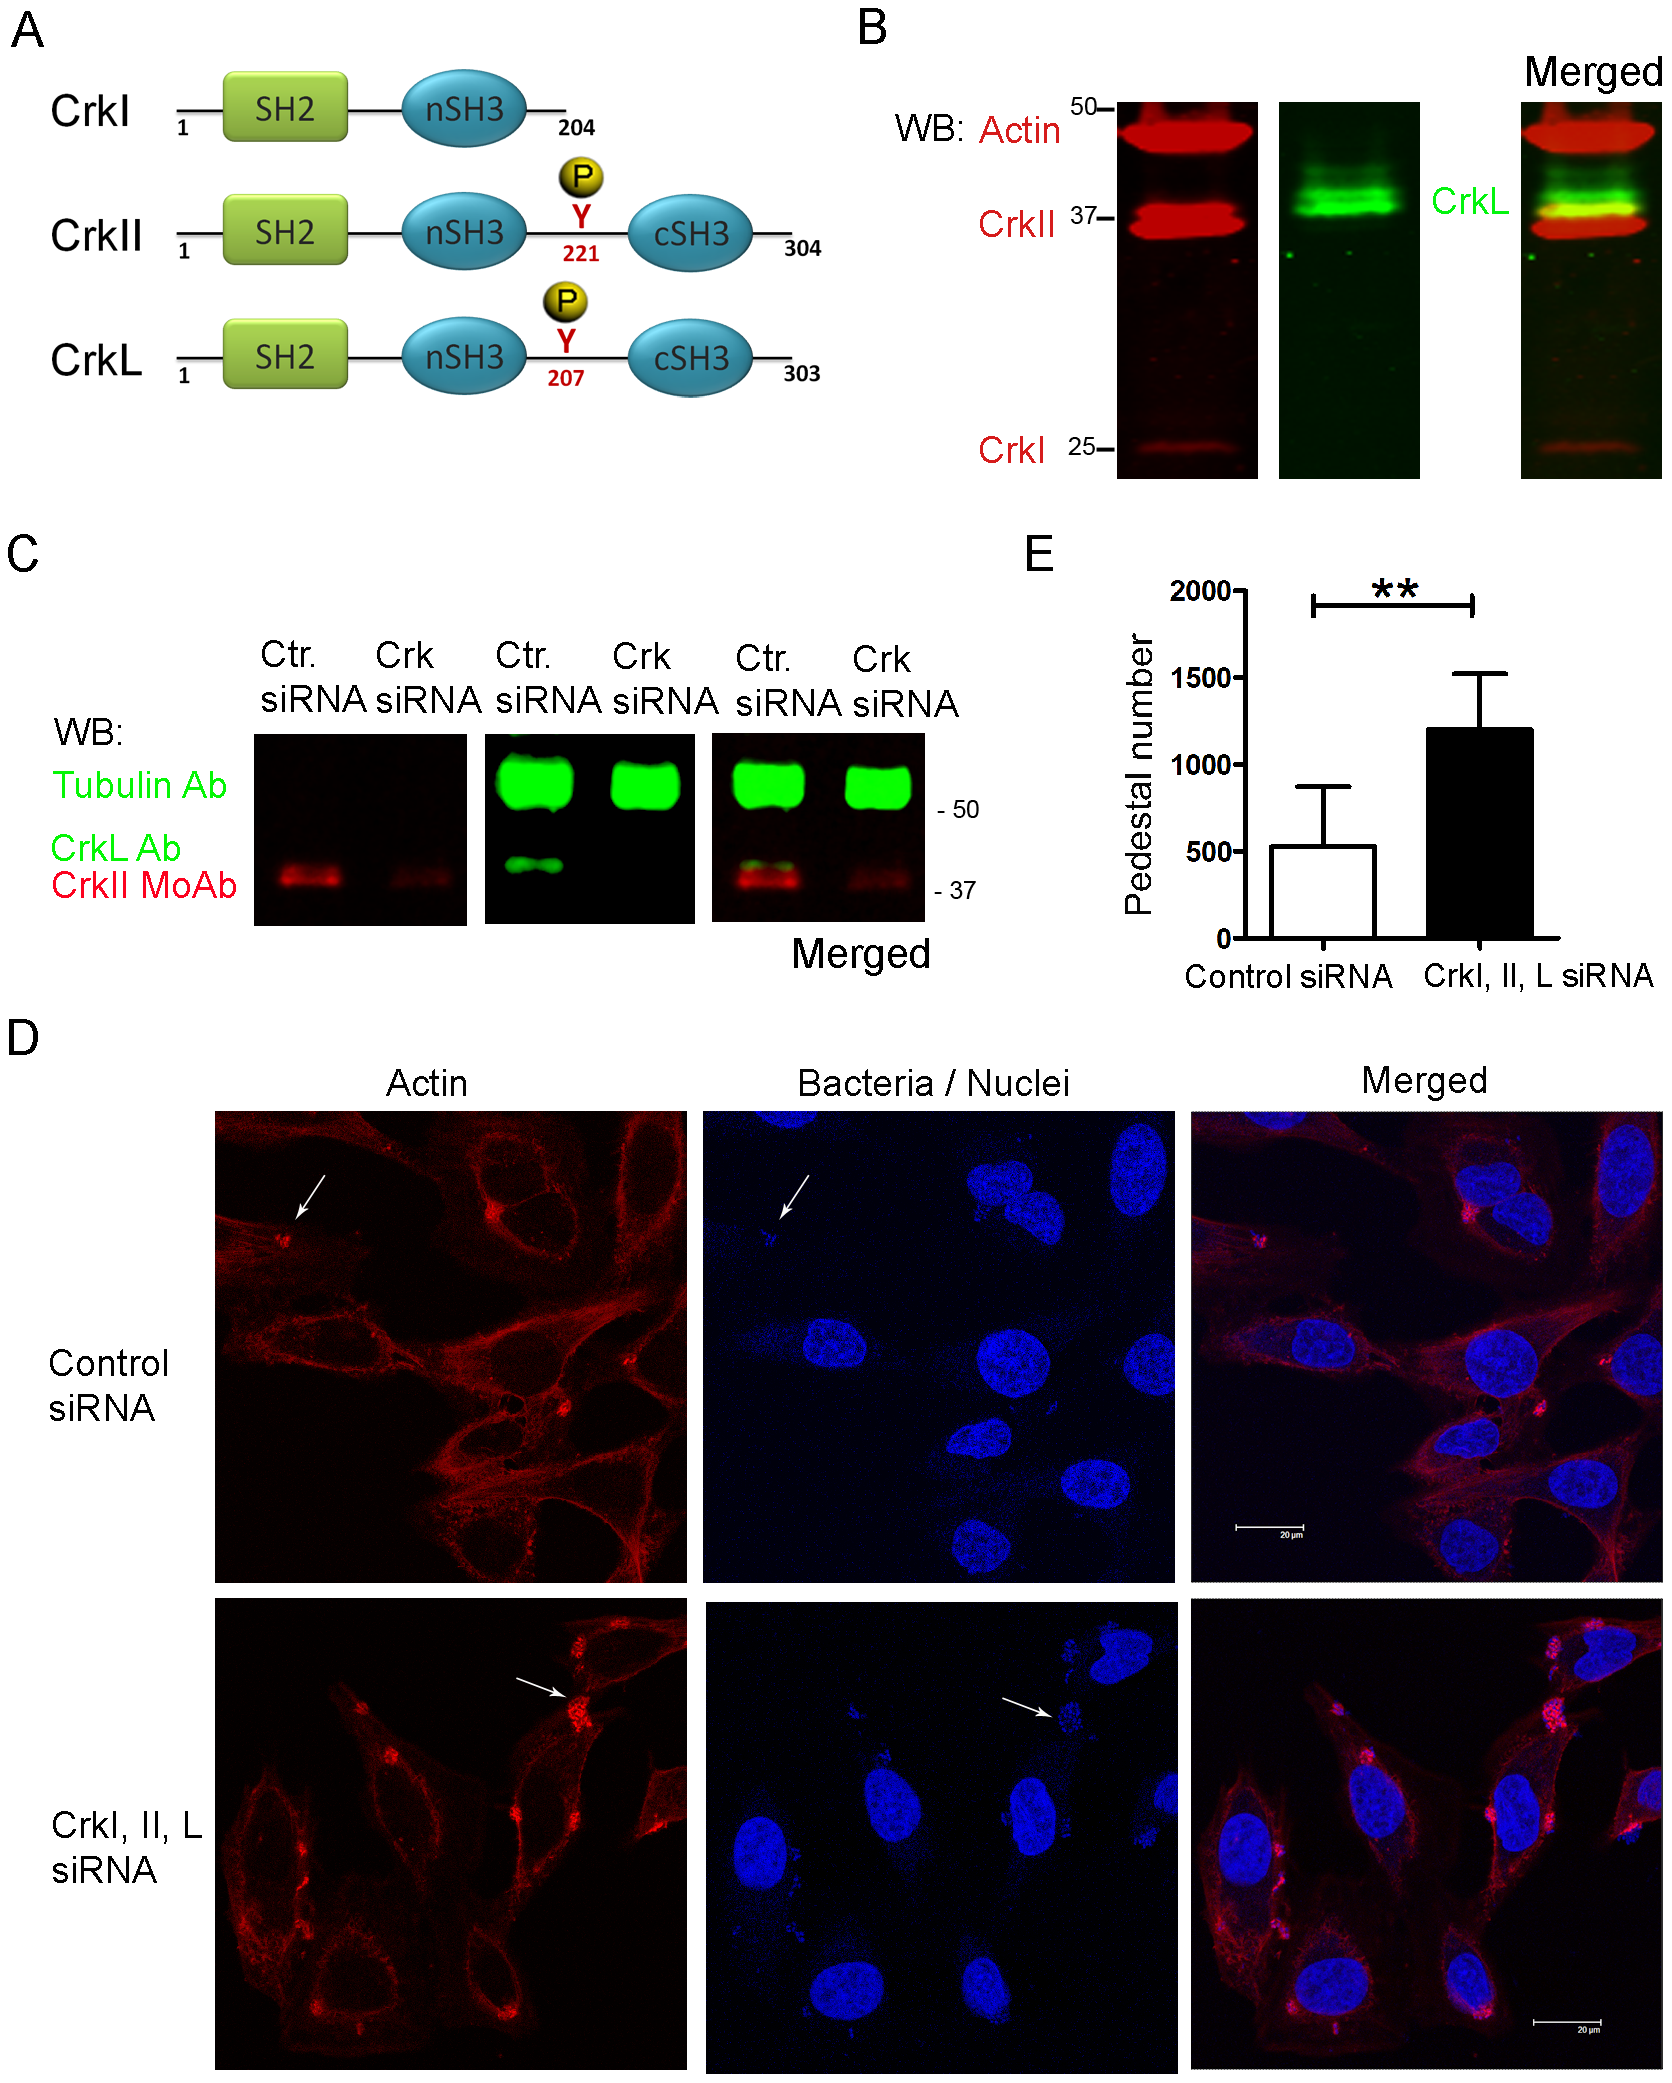 Pedestal formation in HeLa cells treated with siRNA to reduce CrkI/II and CrkL expression.